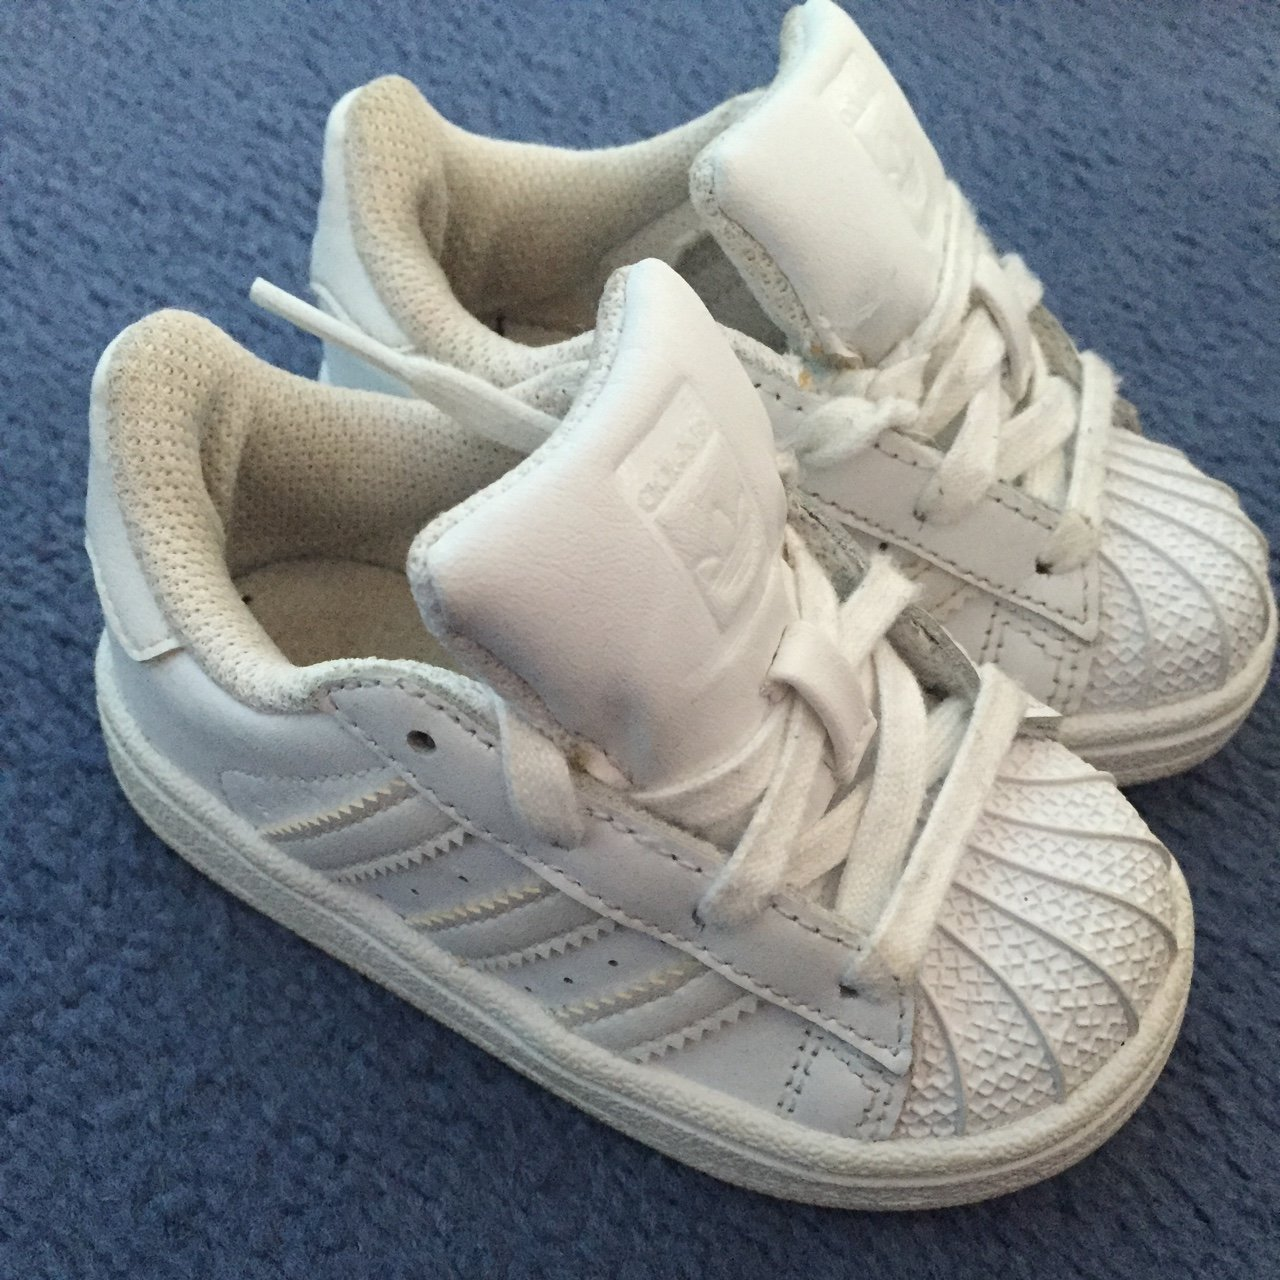 White infant adidas trainers size4 no box p p included in 4 - Depop e25762cf8